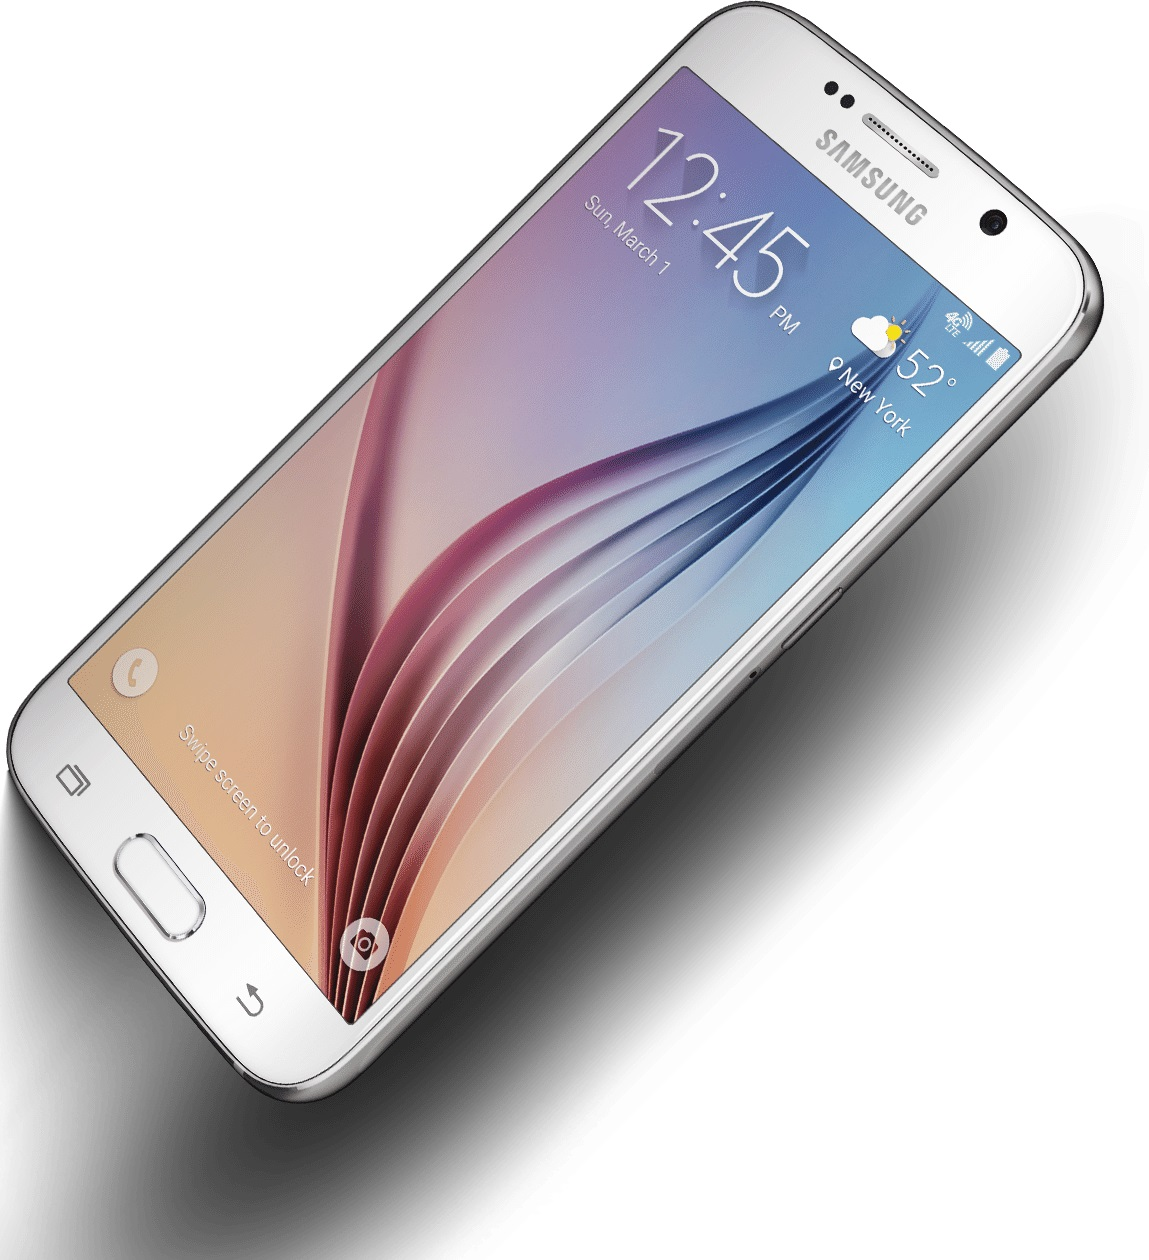 samsung galaxy s6 edge s6 price specifications. Black Bedroom Furniture Sets. Home Design Ideas